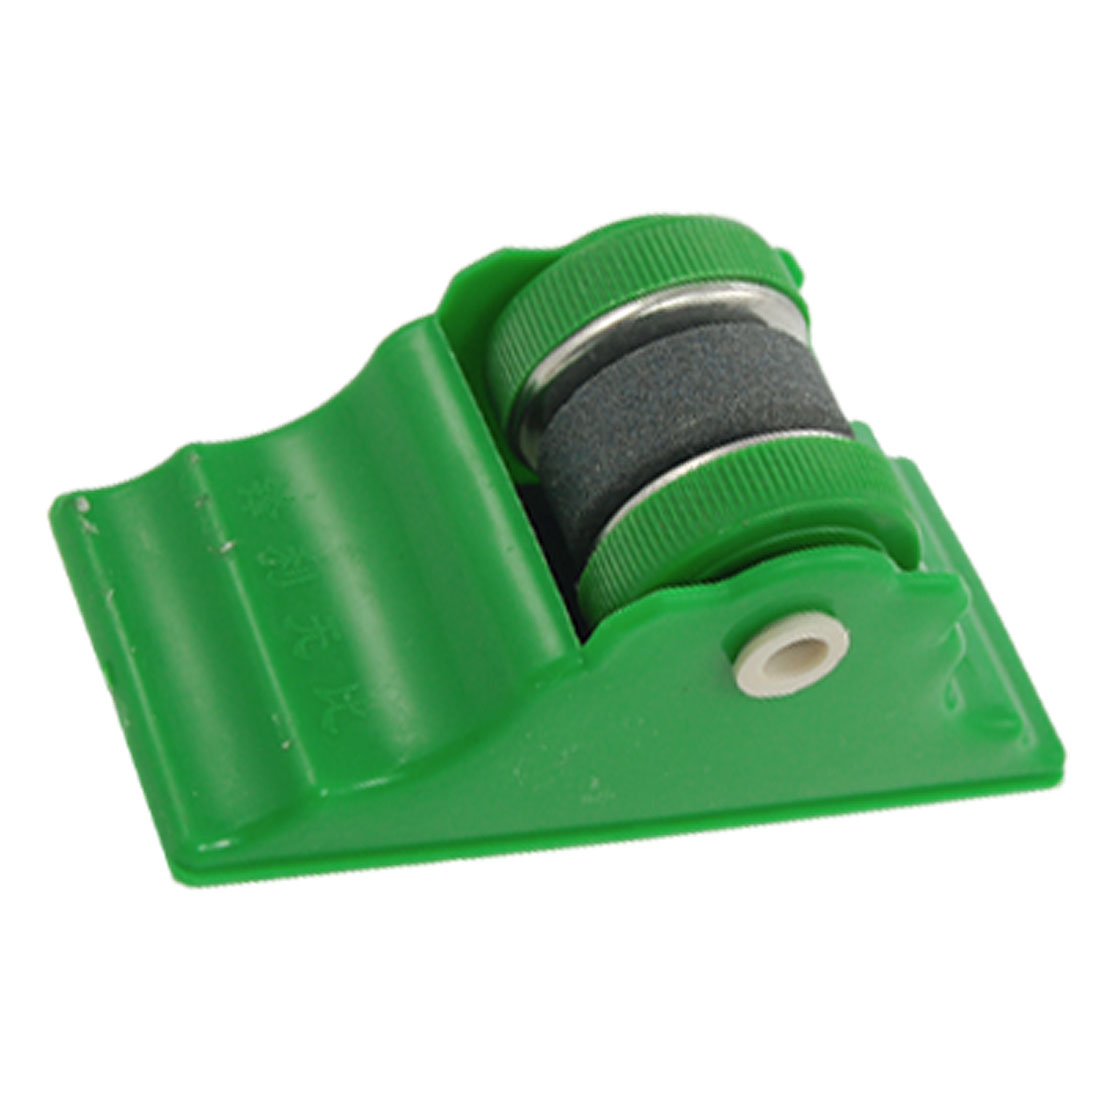 Kitchen Green Shell Grit Lapped Round Blade Whetstone Abrader Sharper